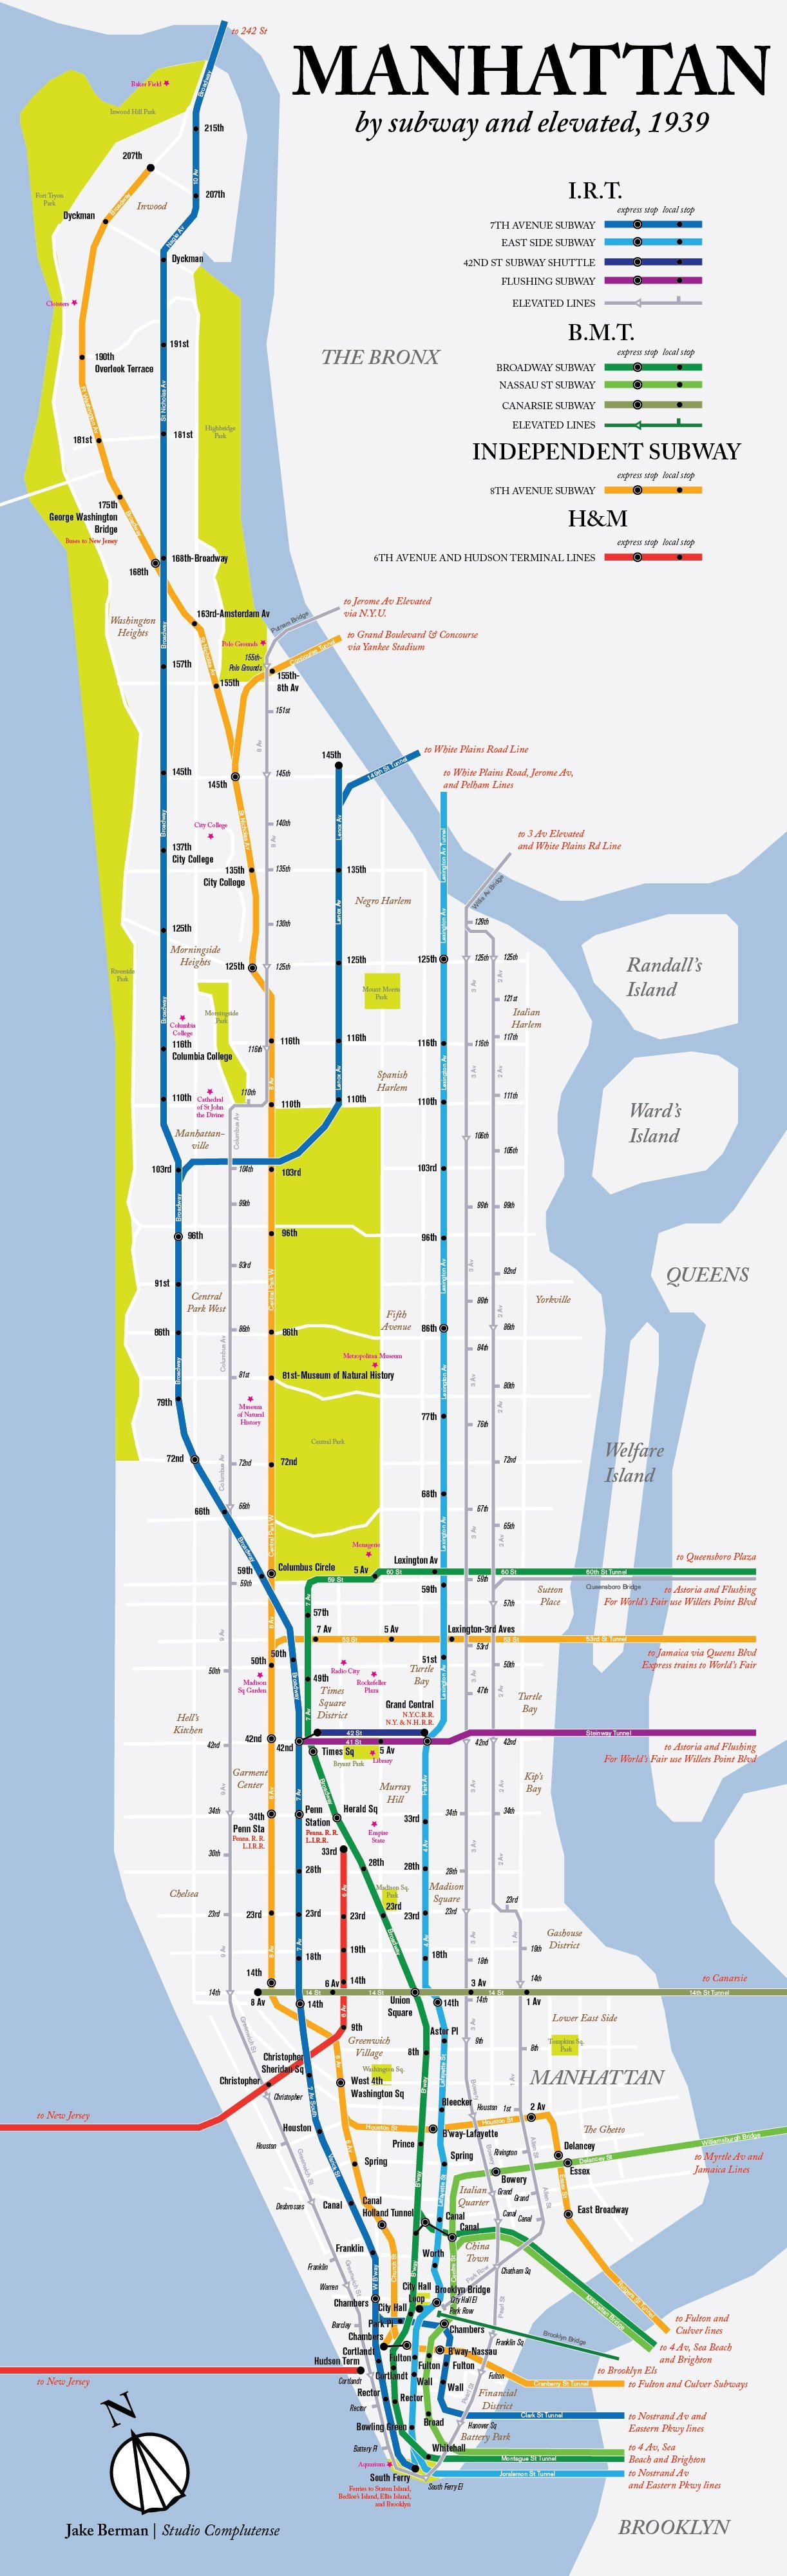 New Second Ave Subway Map.Map Here S What The Nyc Subway System Looked Like In 1939 6sqft